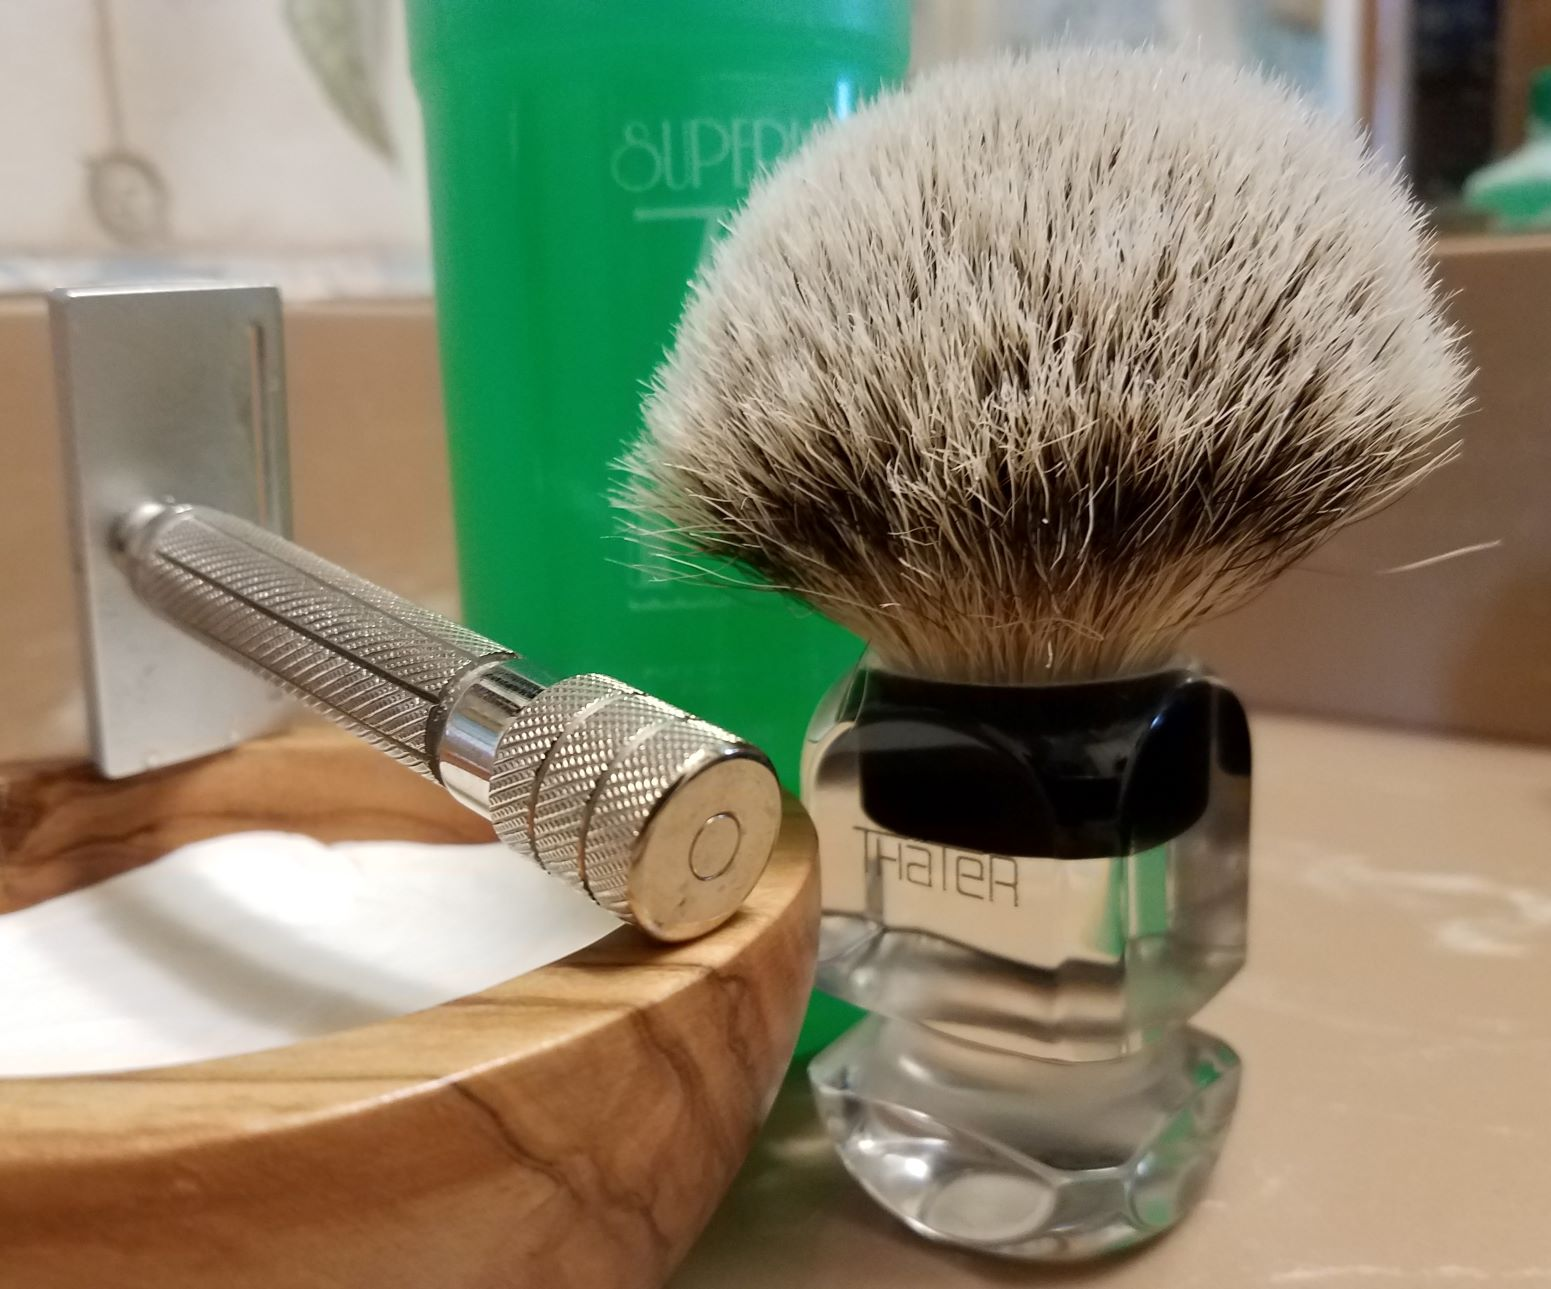 SOTD Salters soap Thayer 15July2018.jpg